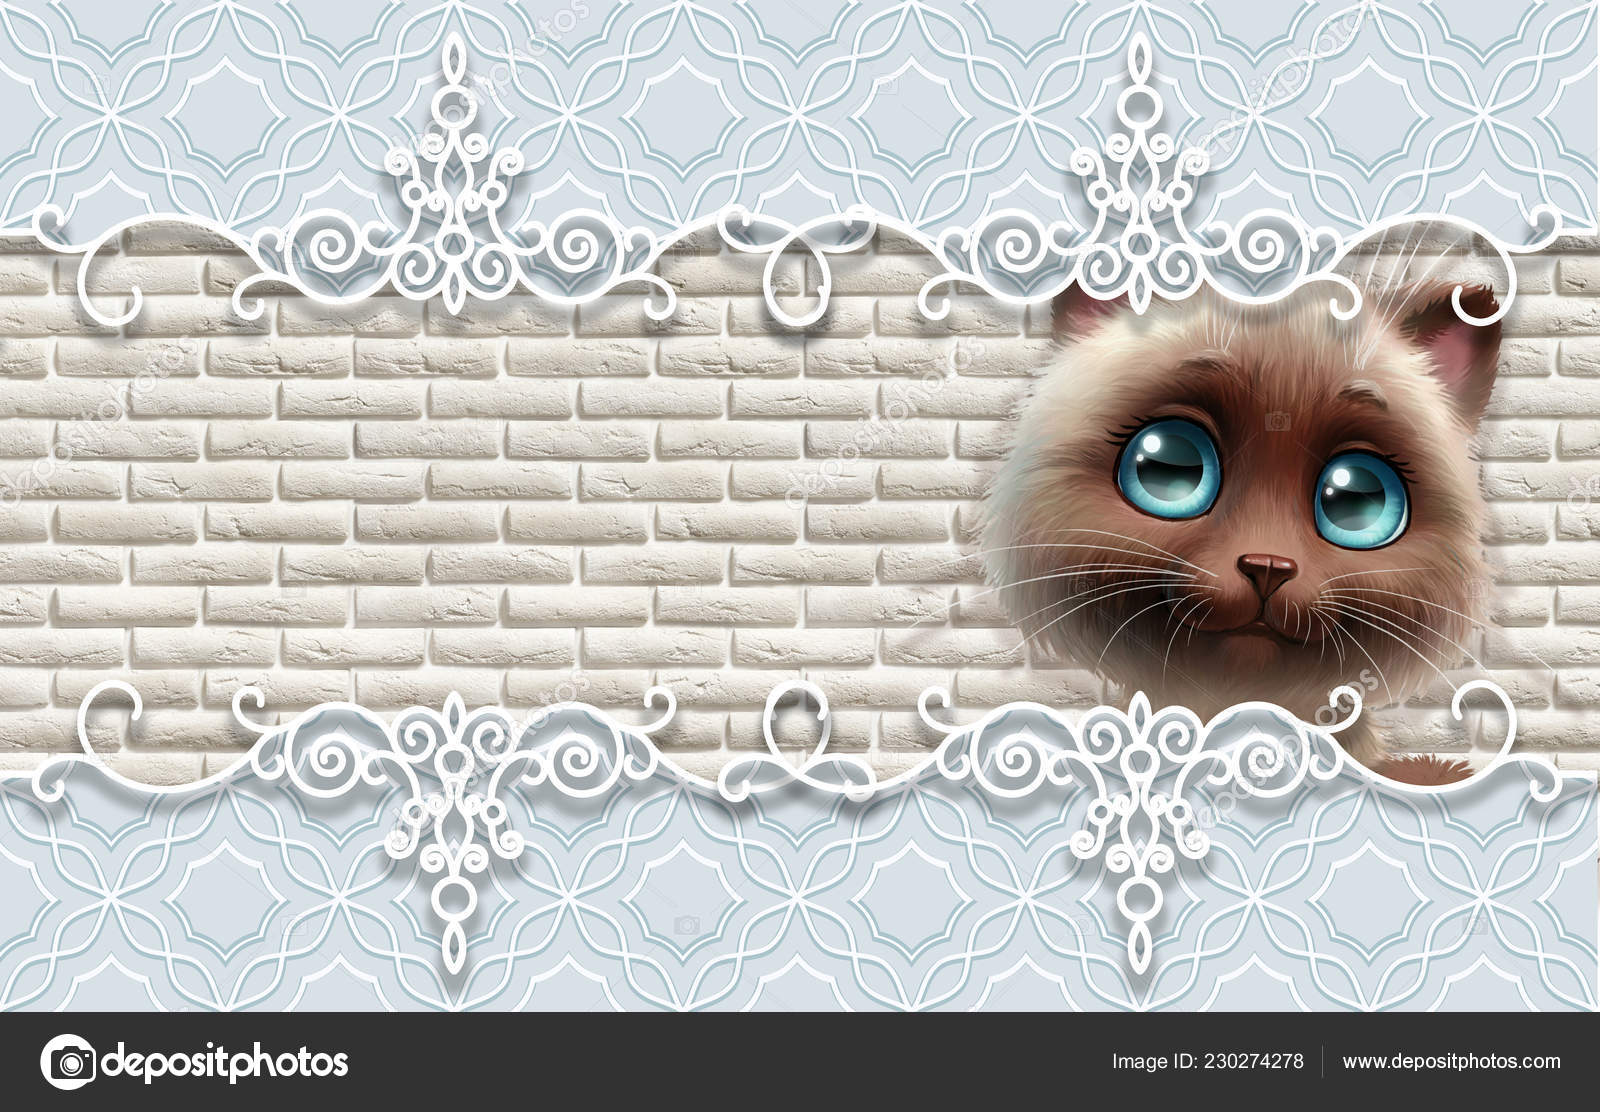 Wallpapers For Cute Babies Wallpaper Cute Baby Background Cat Baby Greeting Card Stock Photo C Di Vna 230274278